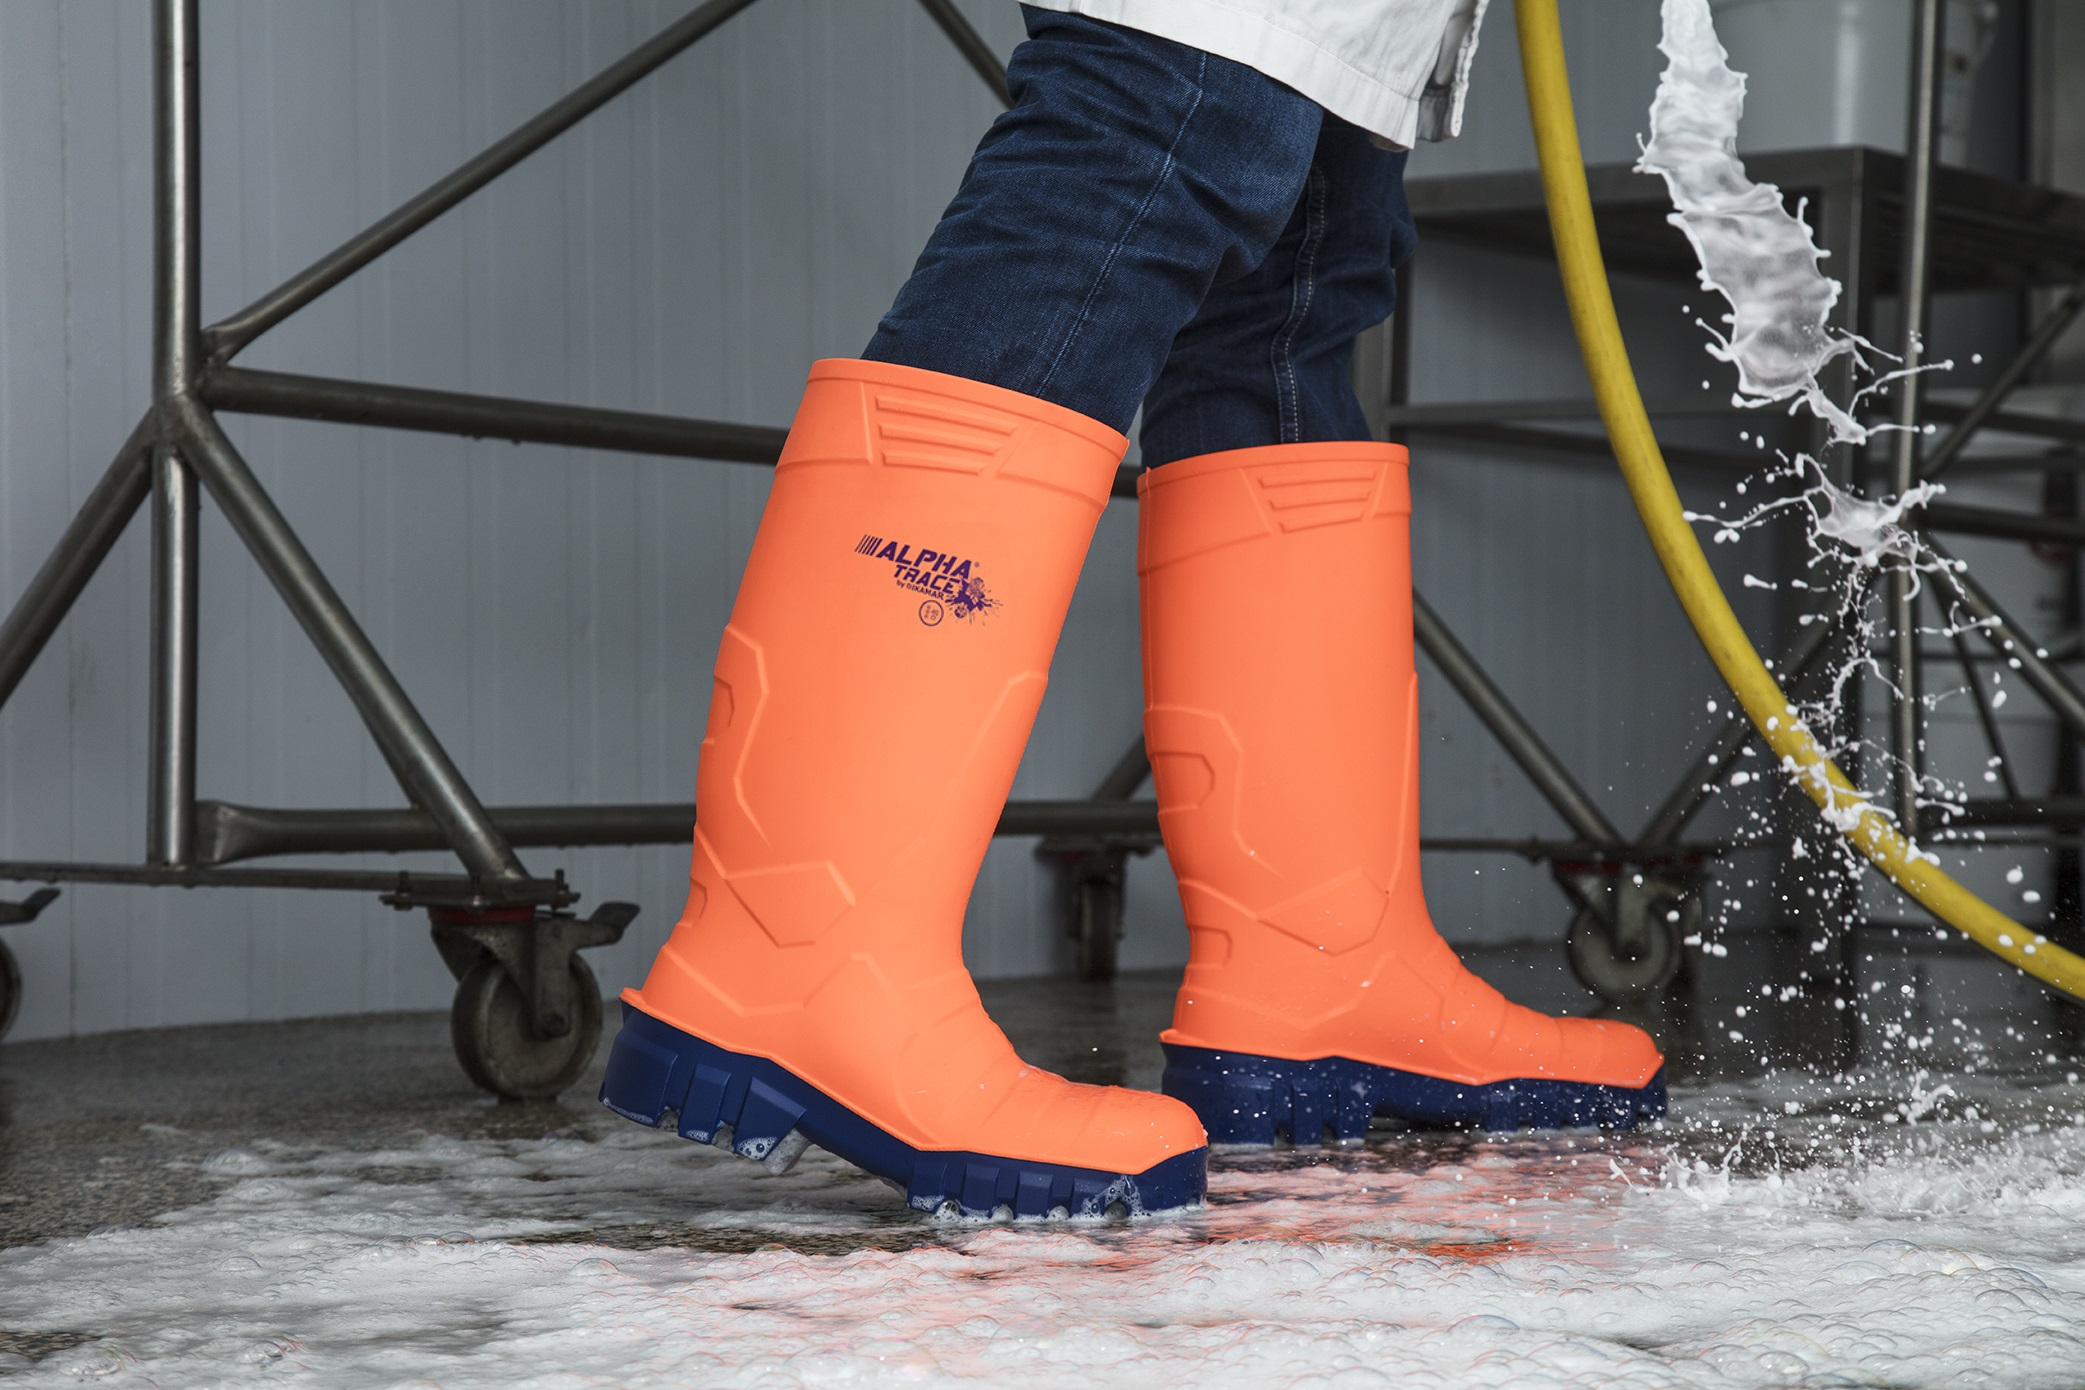 How to choose your winter safety boots: be warm at any temperature!